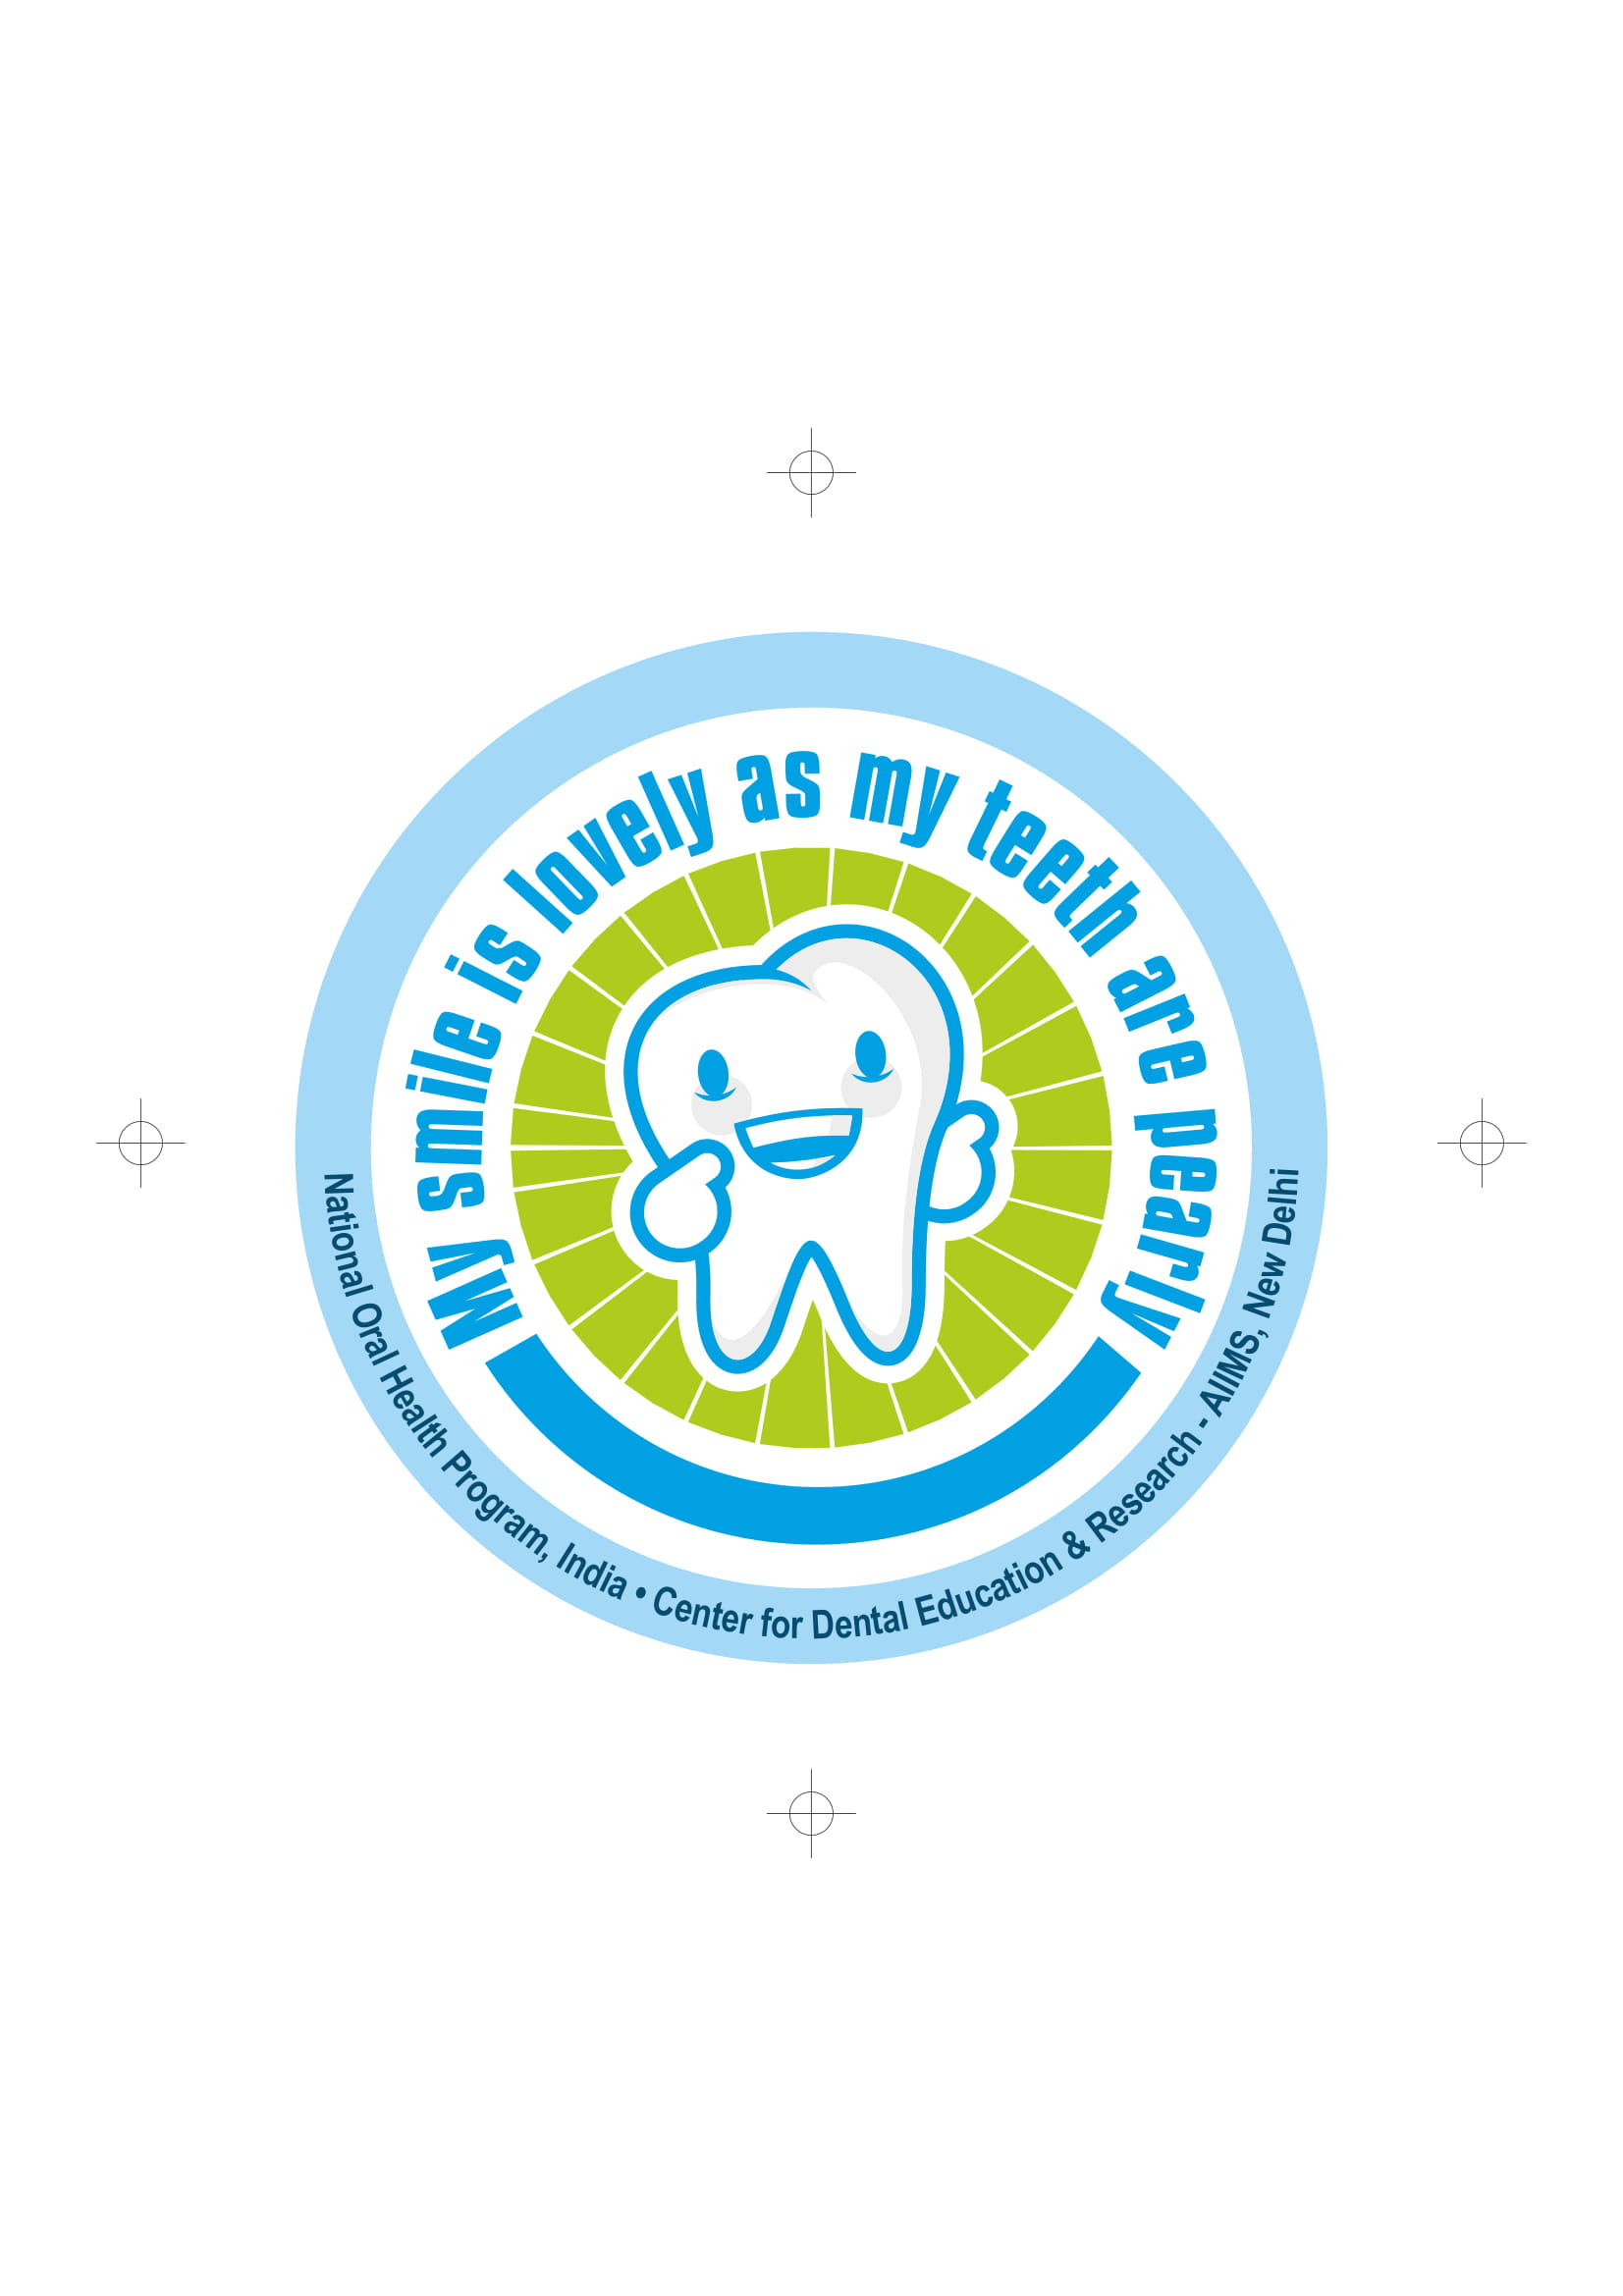 Badges on Oral Health